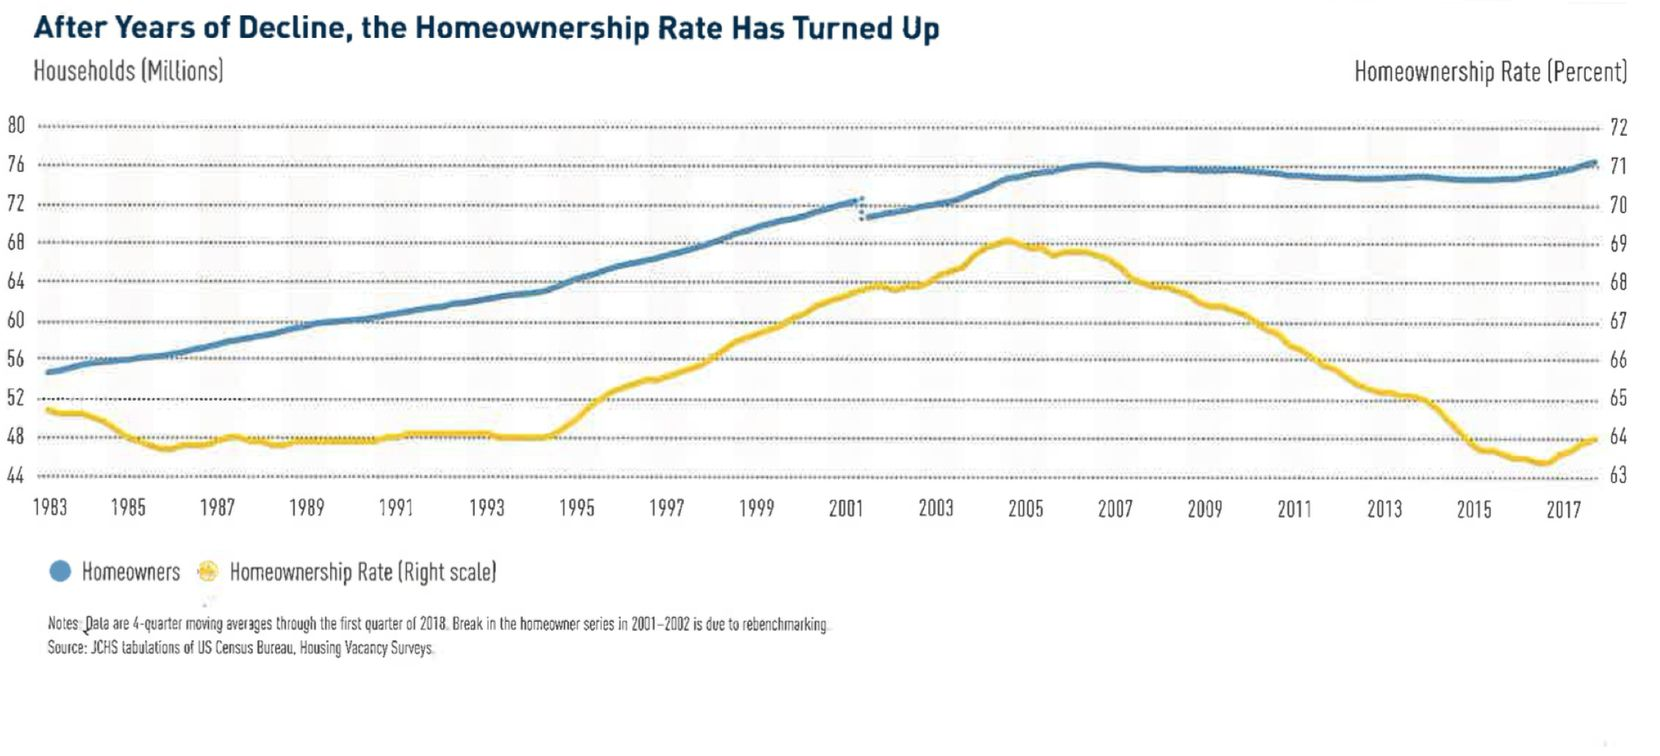 Homeownership rates across the country are rising for the first time since the recession.